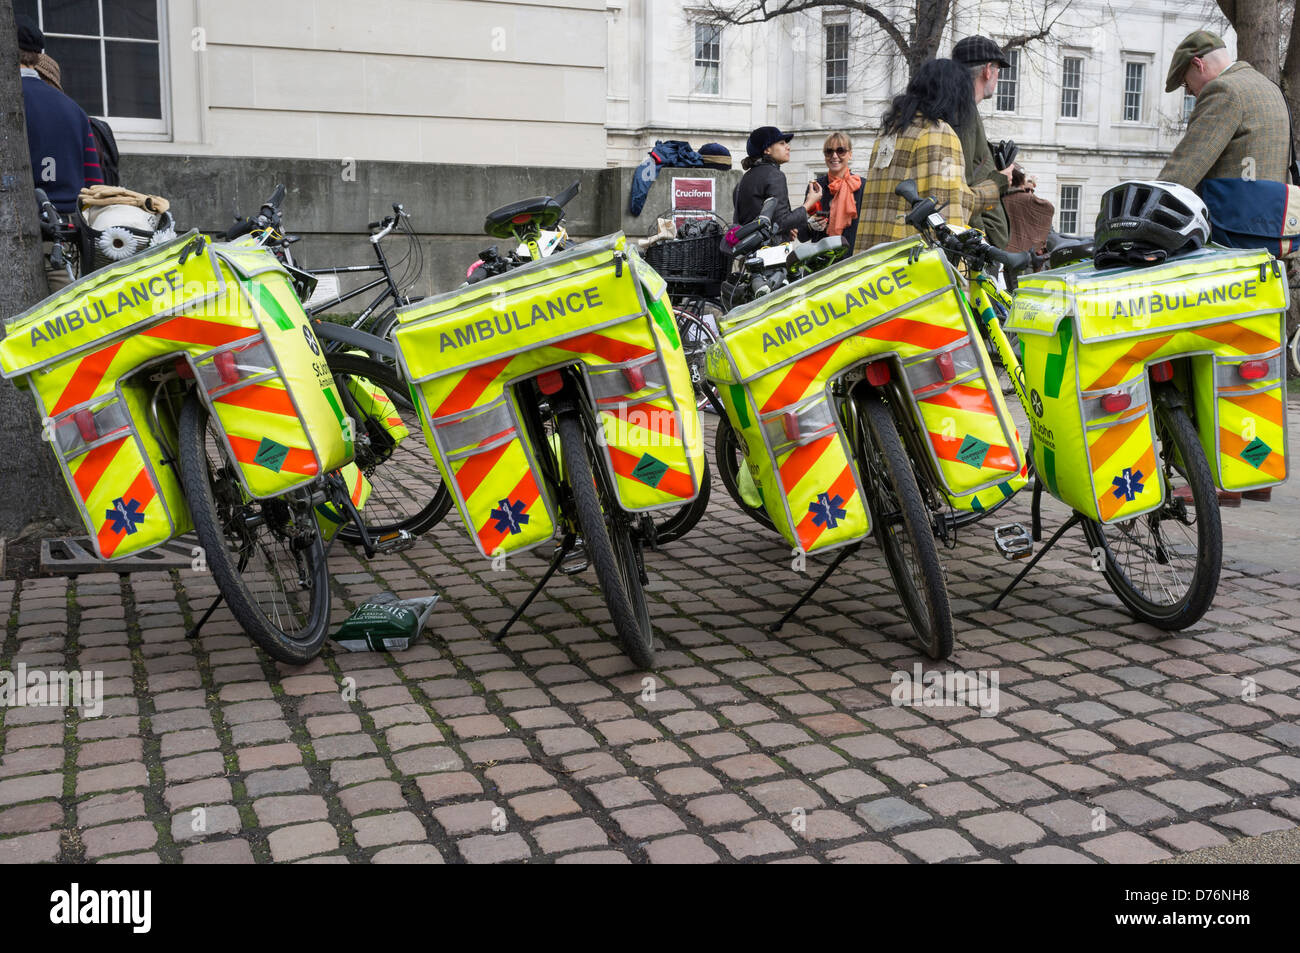 A row of Ambulance (Paramedic) bicycles. Picture by Julie Edwards - Stock Image